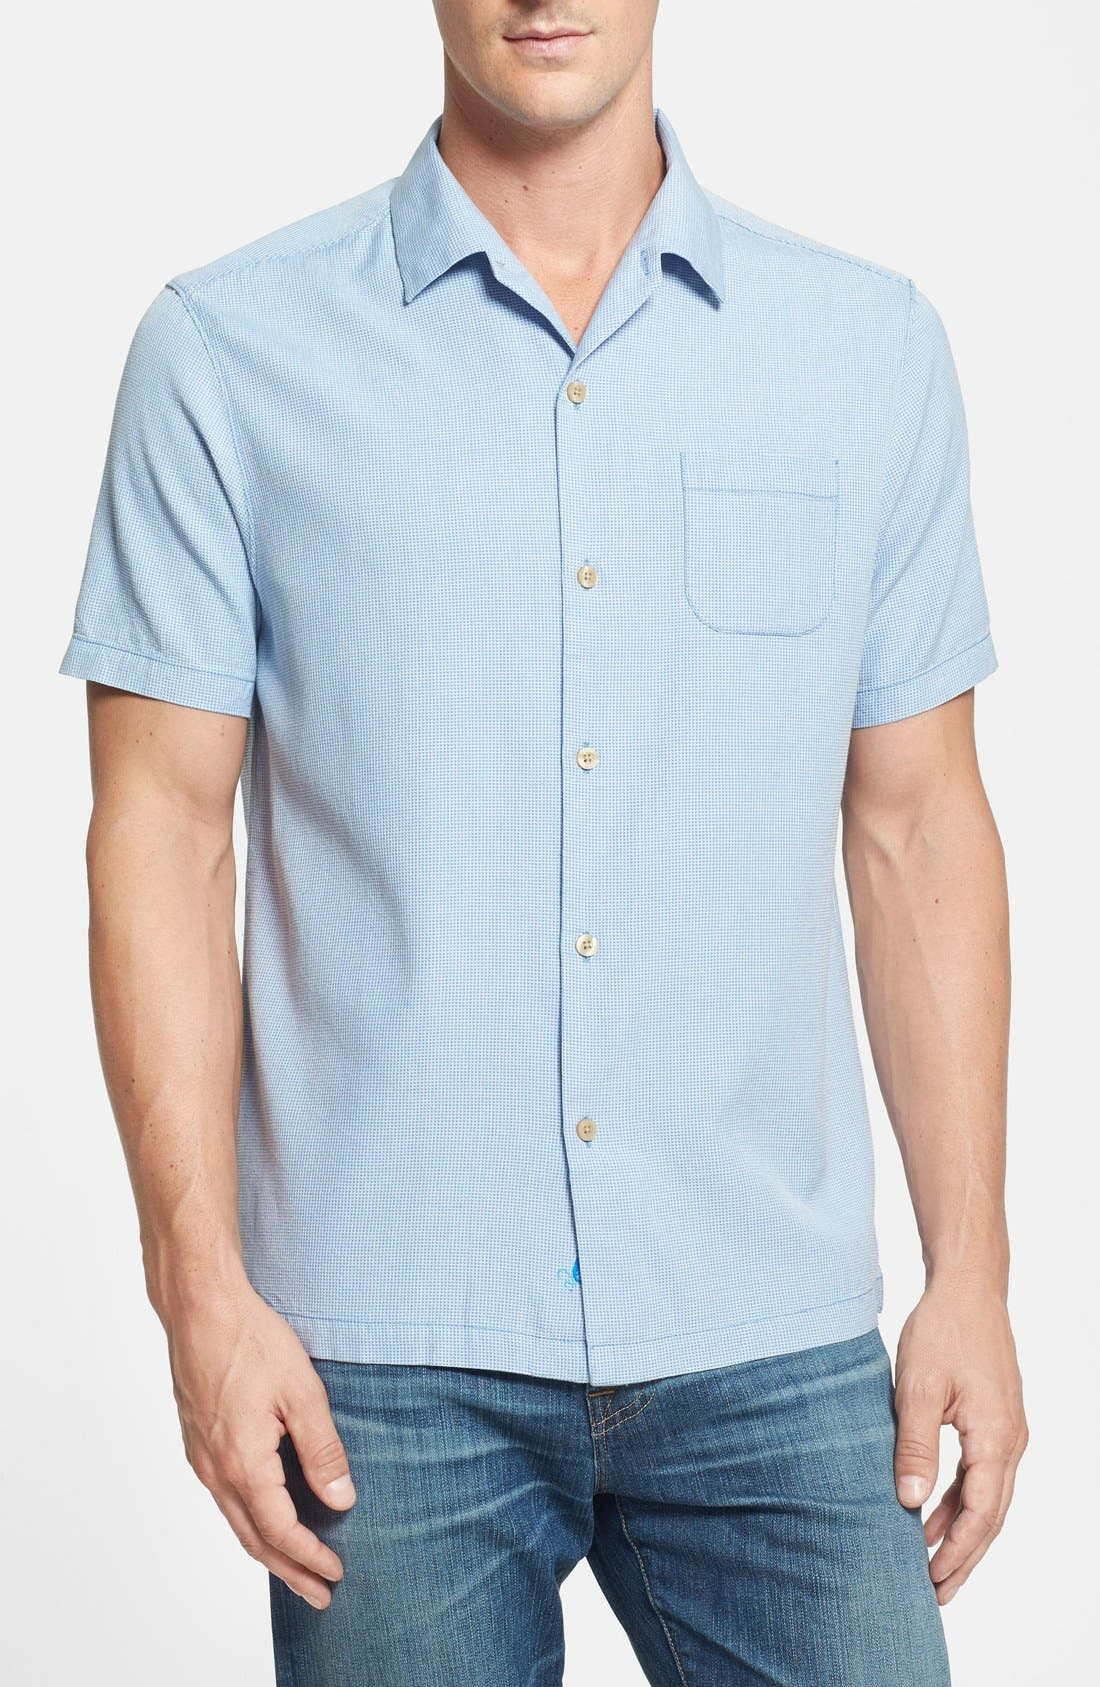 Alternate Image 1 Selected - Tommy Bahama 'Pacific Square' Island Modern Fit Silk & Cotton Campshirt